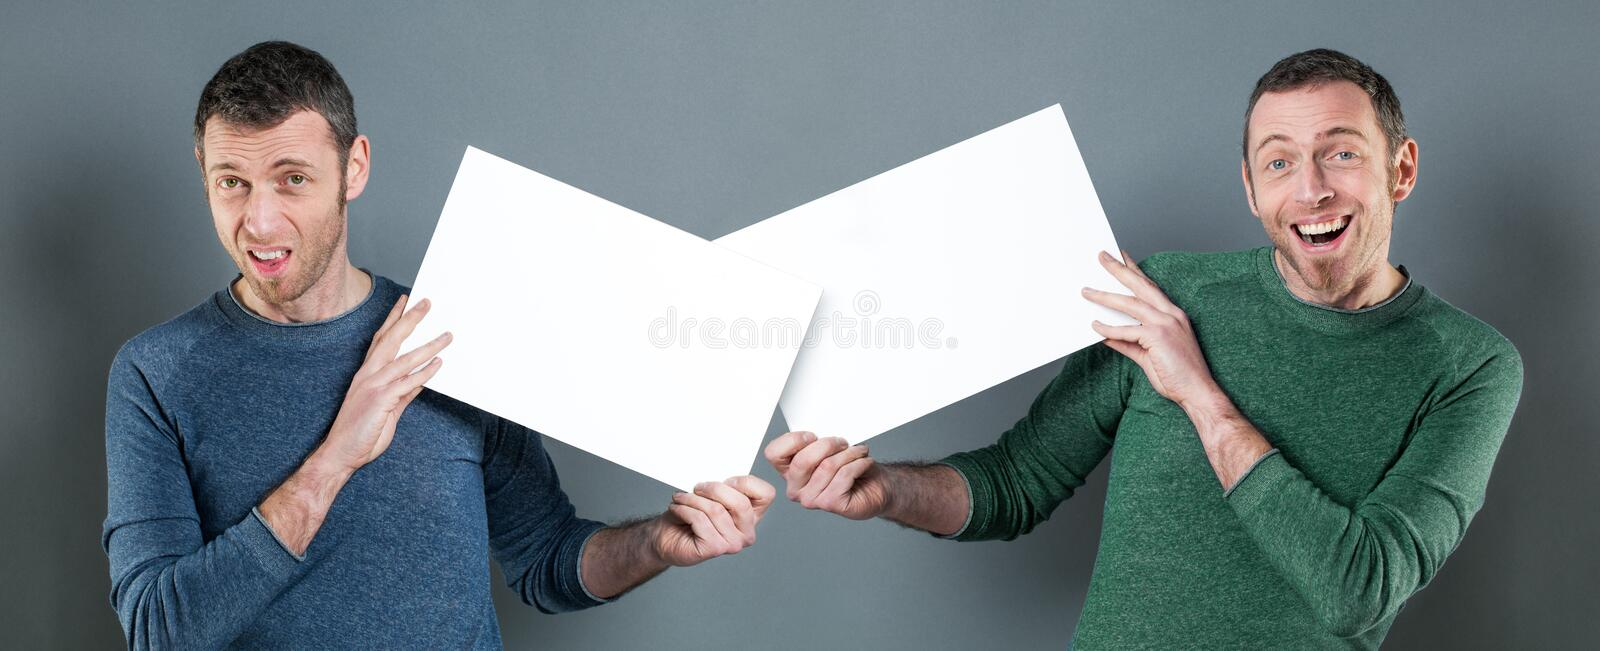 Concept of message confusion with man displaying copy space communication royalty free stock photos